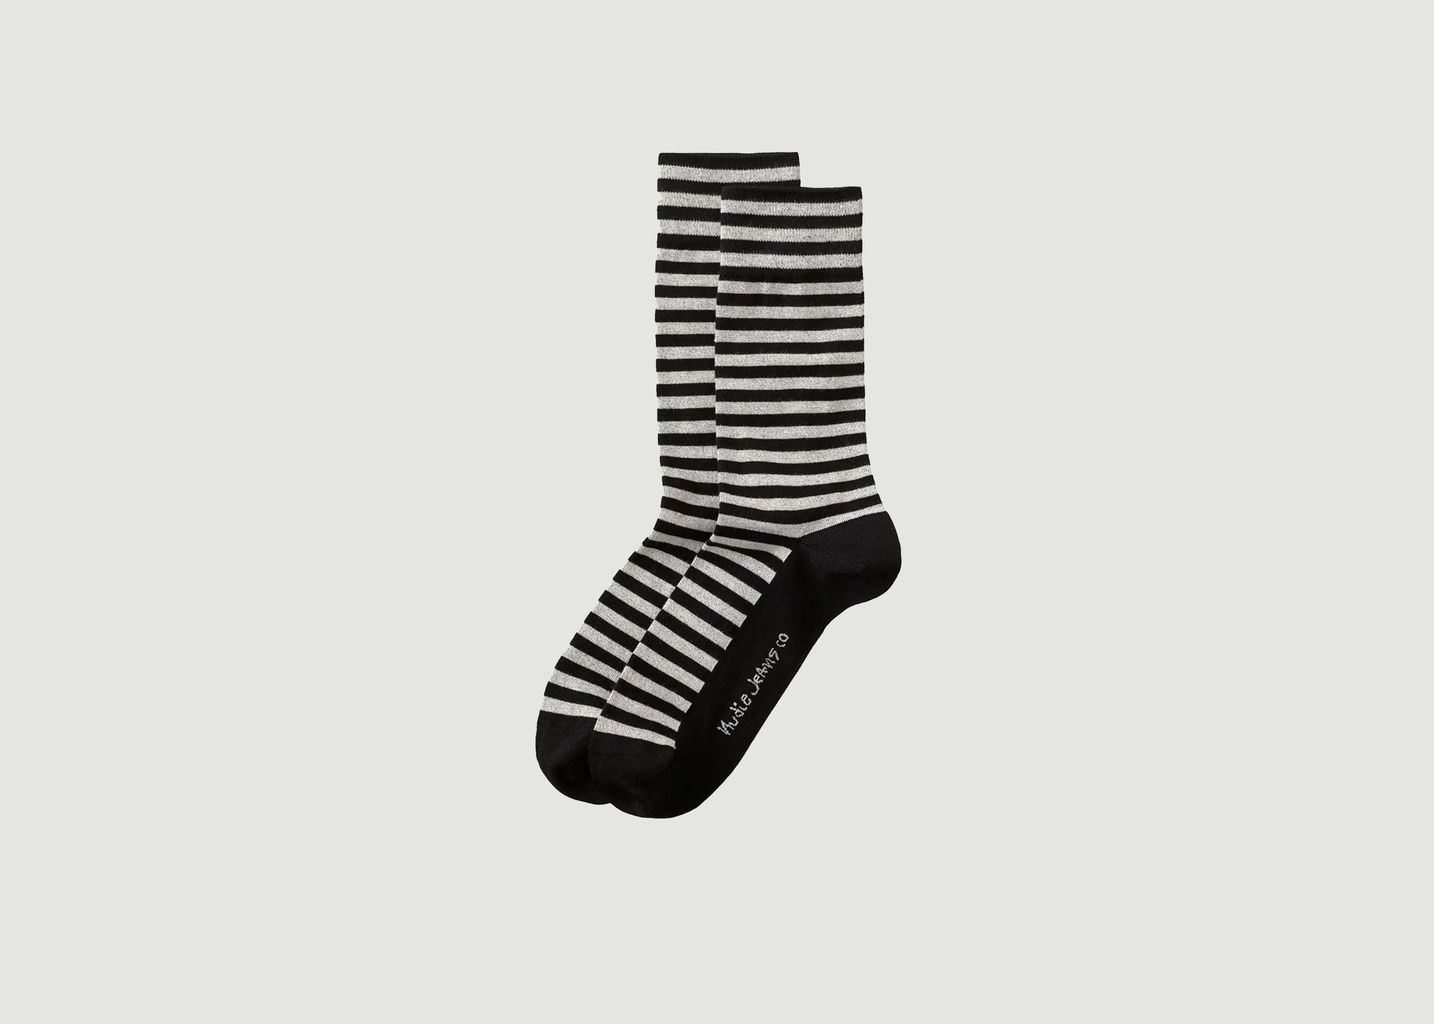 Chaussettes rayées Olsson - Nudie Jeans